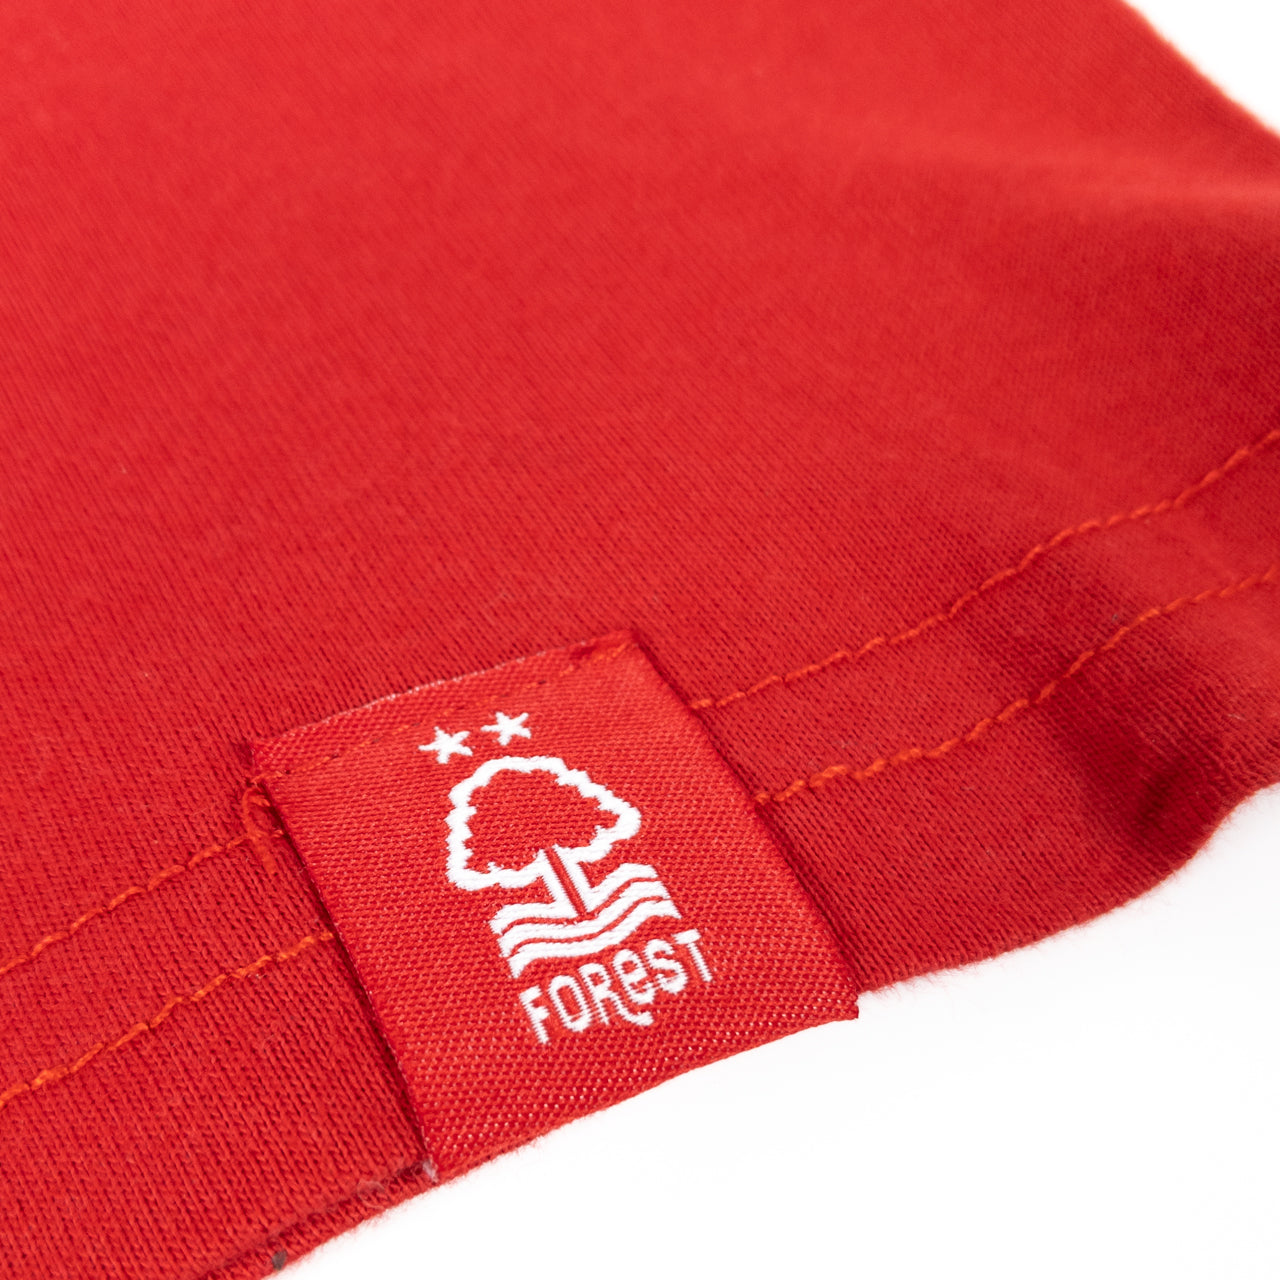 NFFC Mens Red Double Tipped T-Shirt